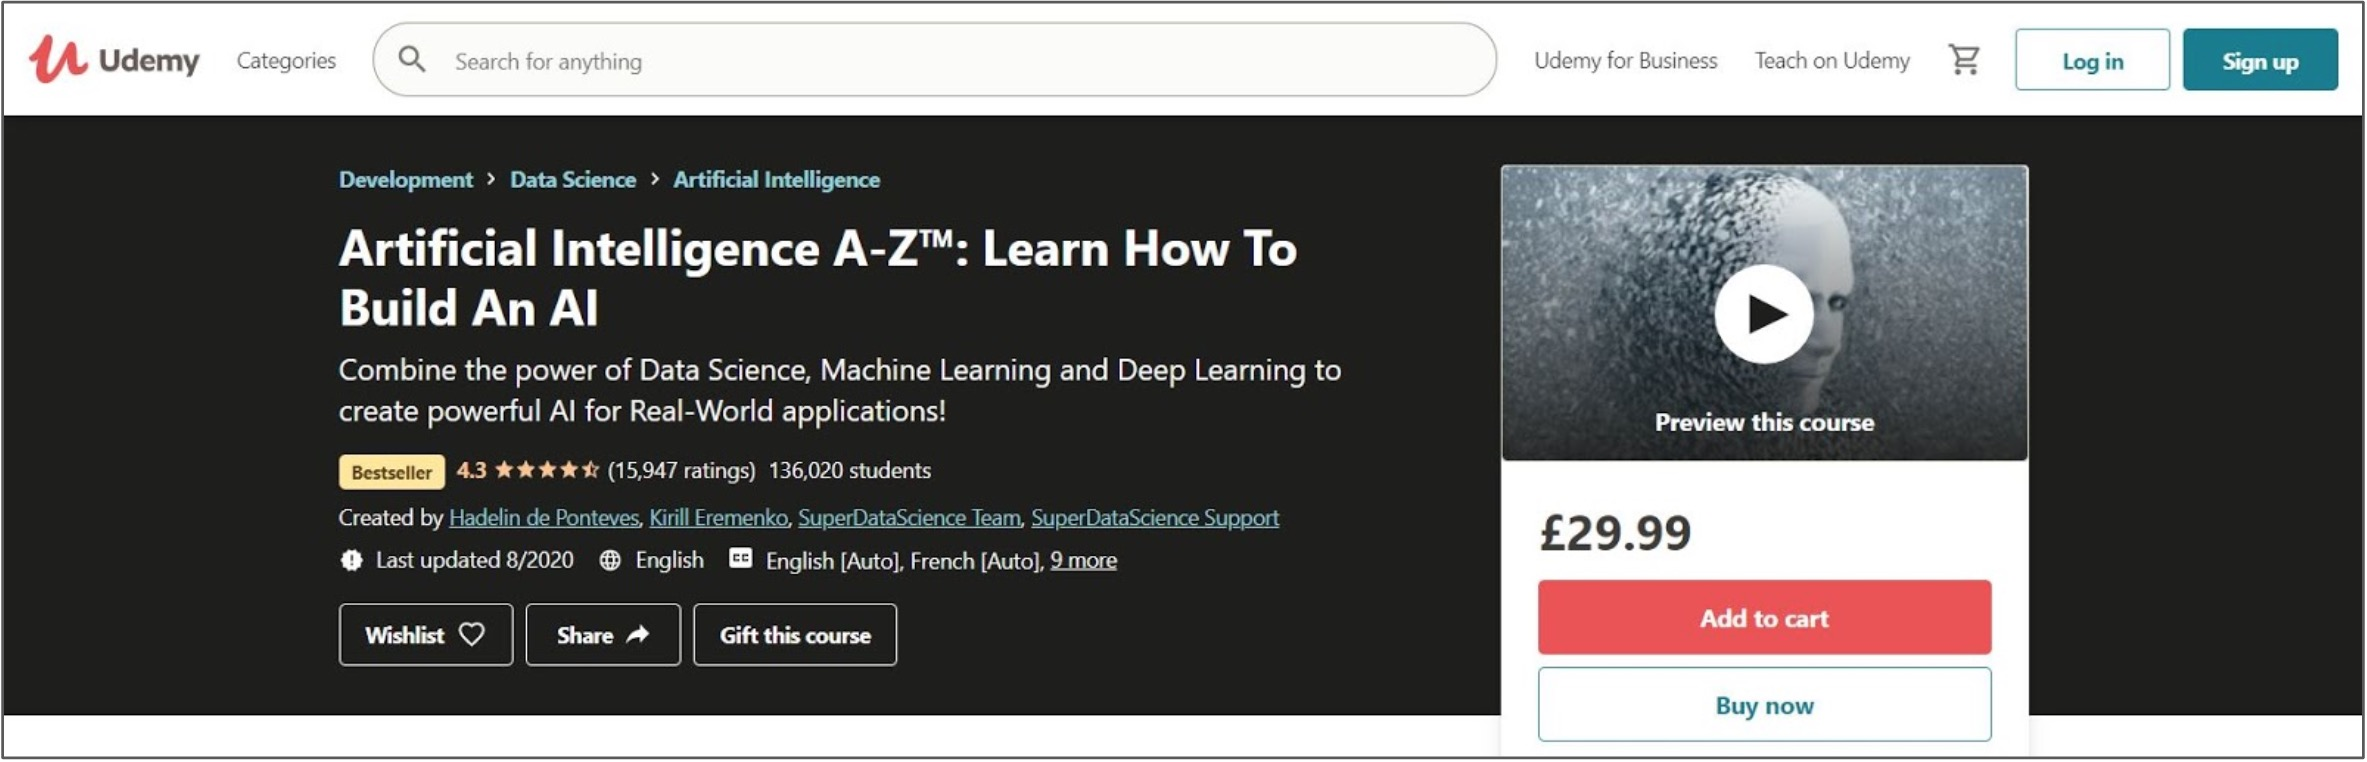 Screenshot of an Artificial Intelligence course on Udemy